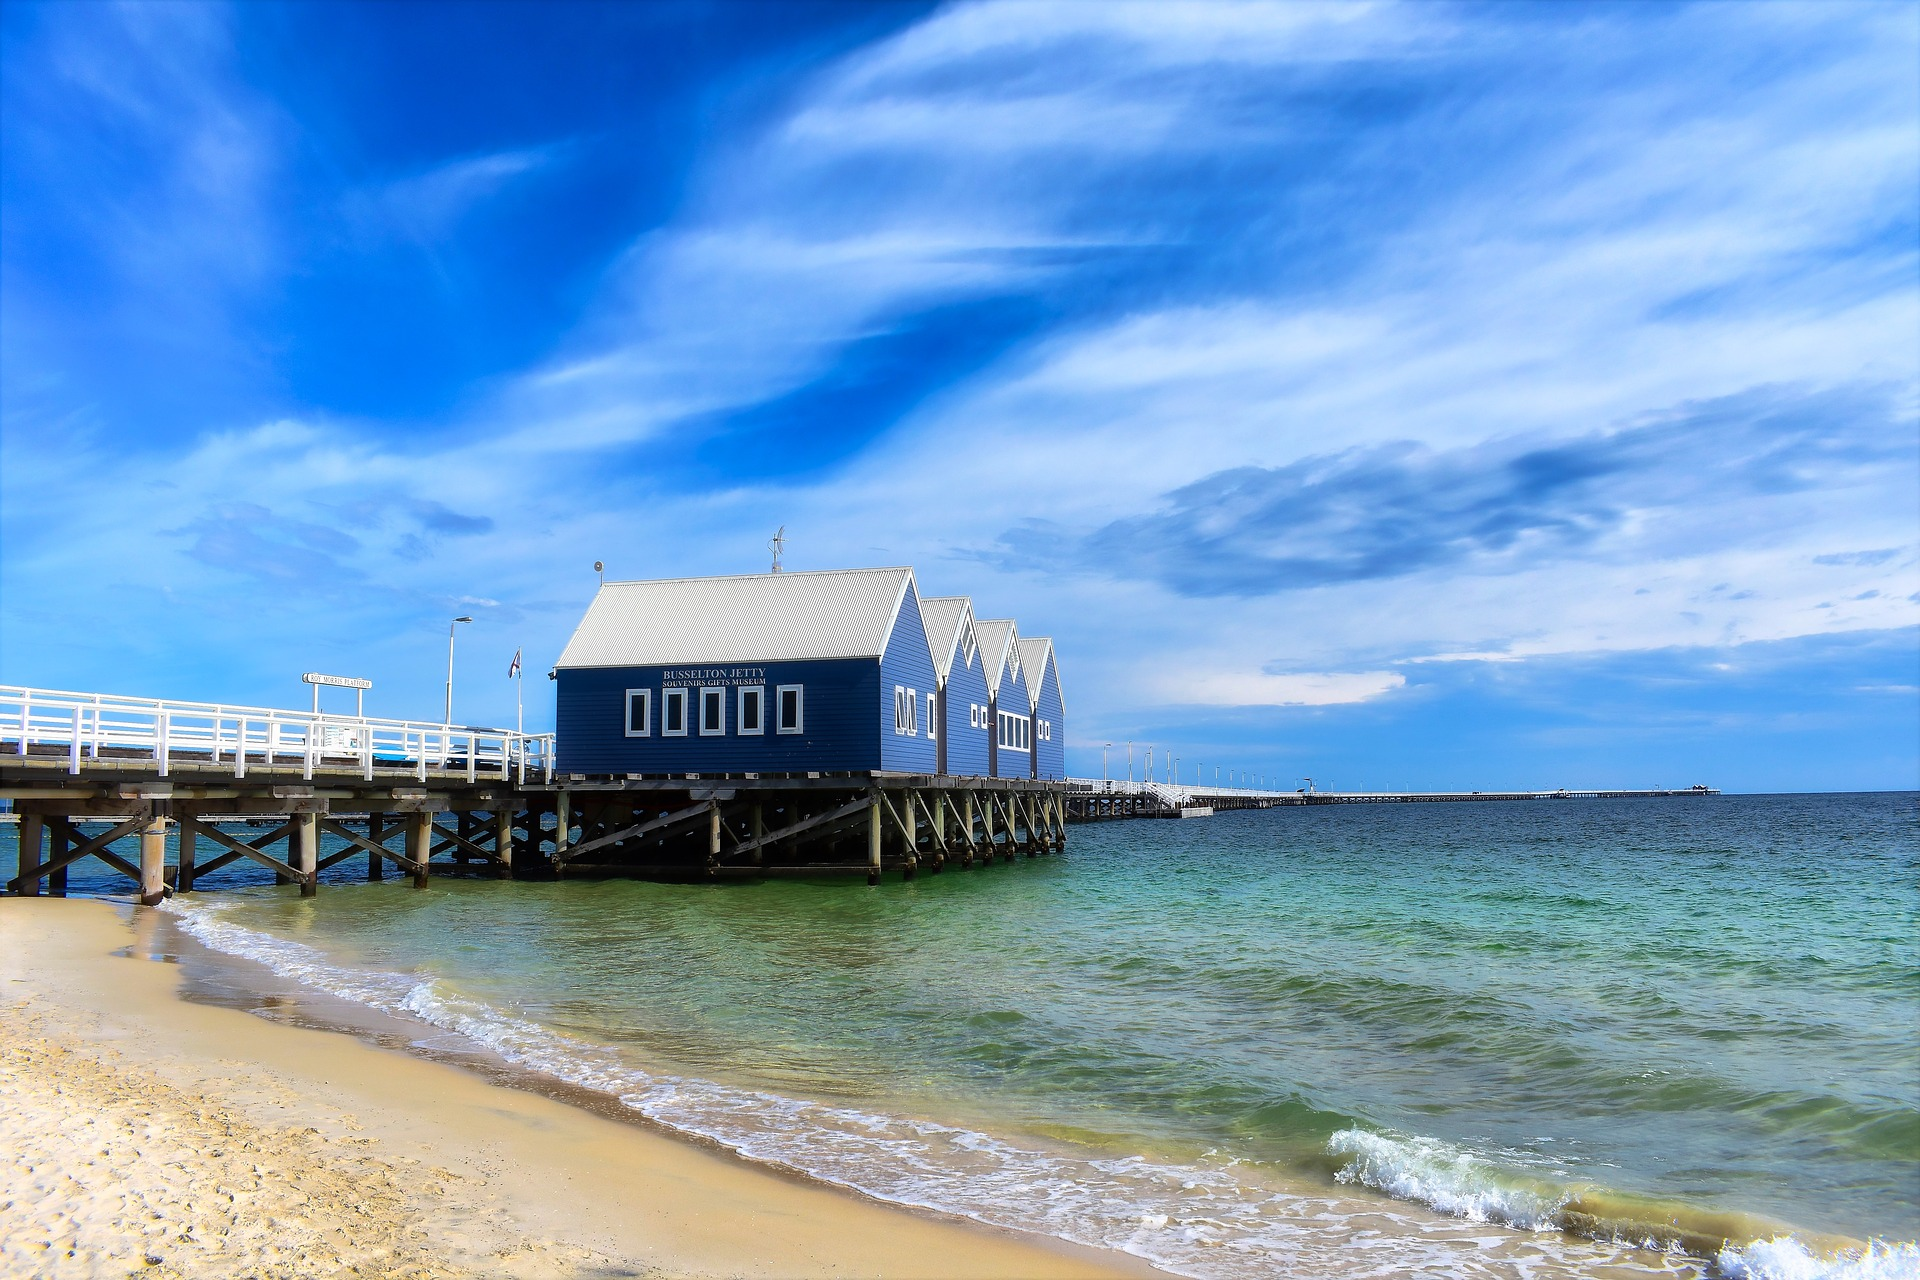 Busselton's iconic jetty. Not quite as busy as Santa Monica Pier.